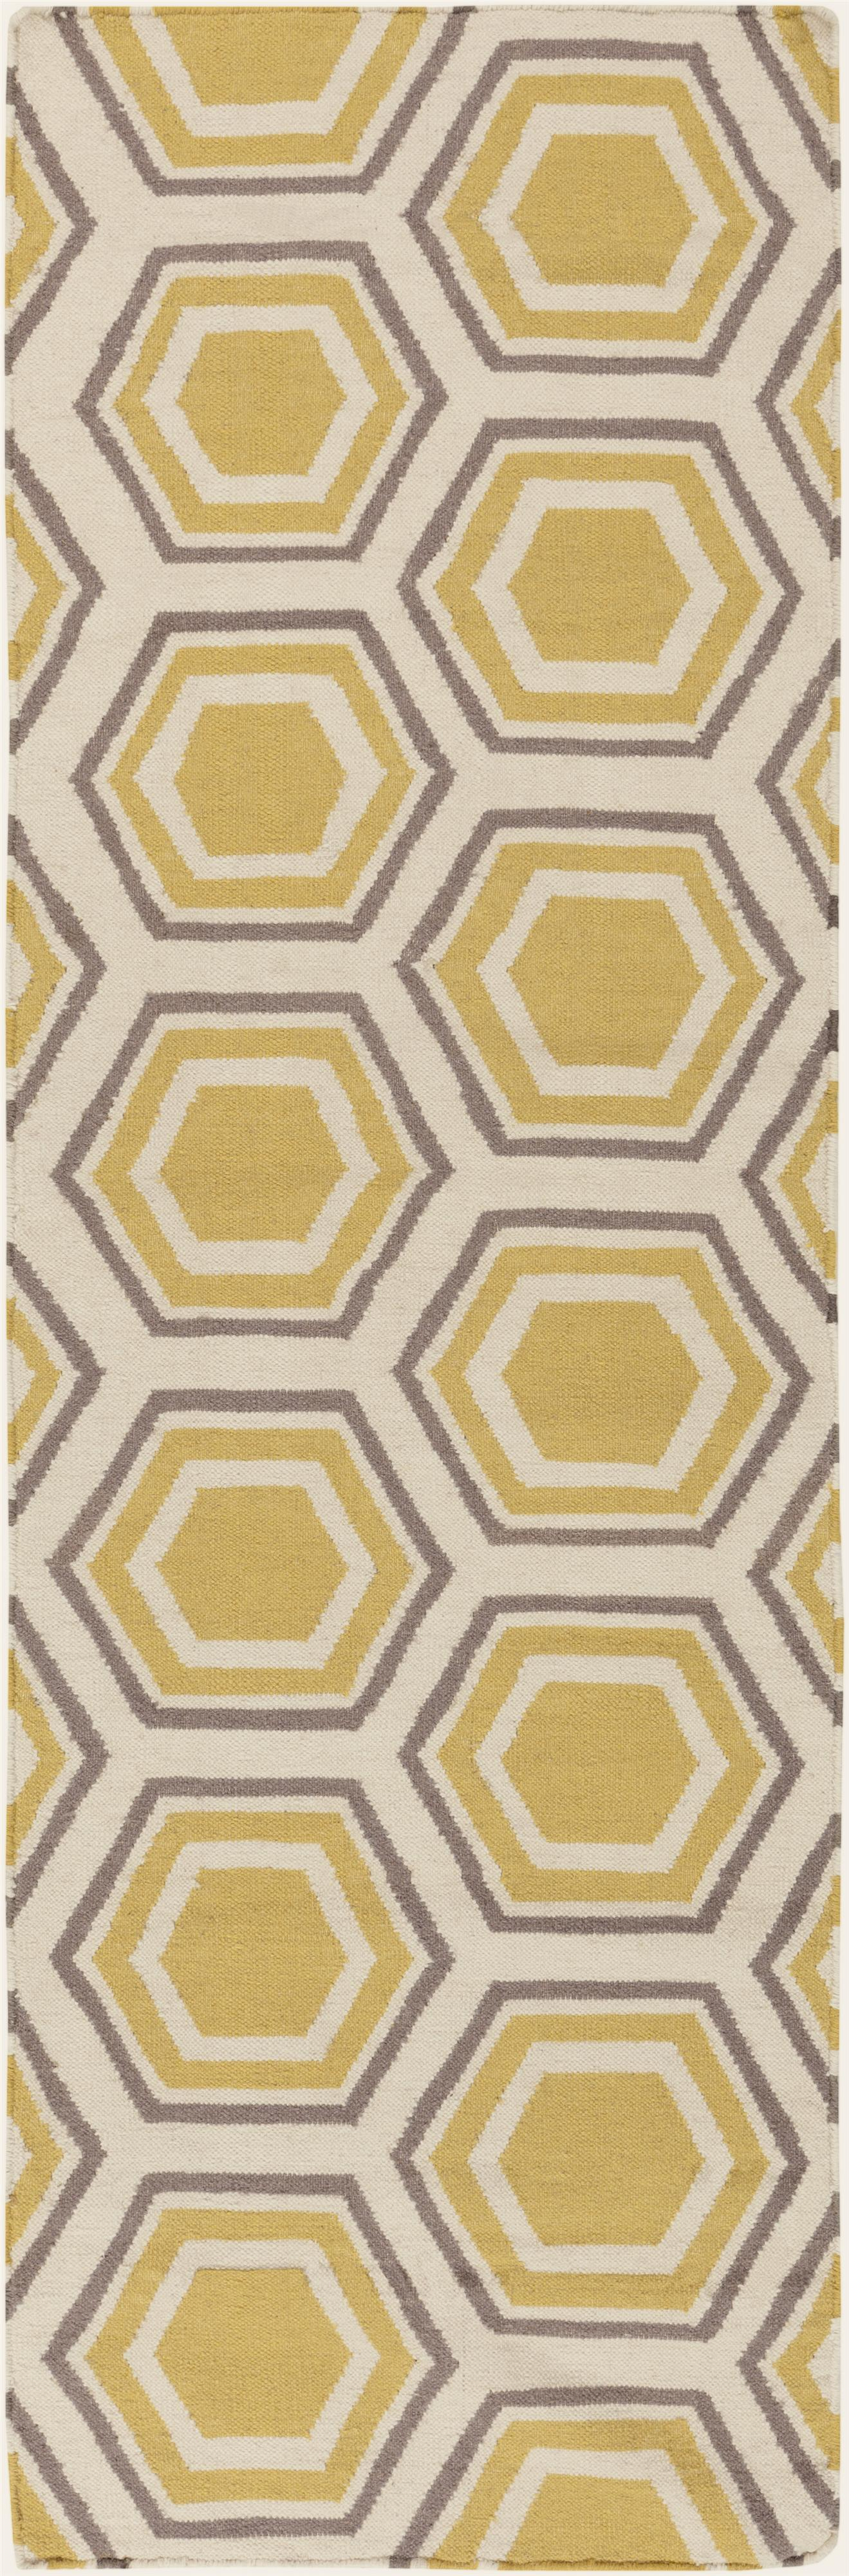 "Surya Fallon 2'6"" x 8' - Item Number: FAL1036-268"